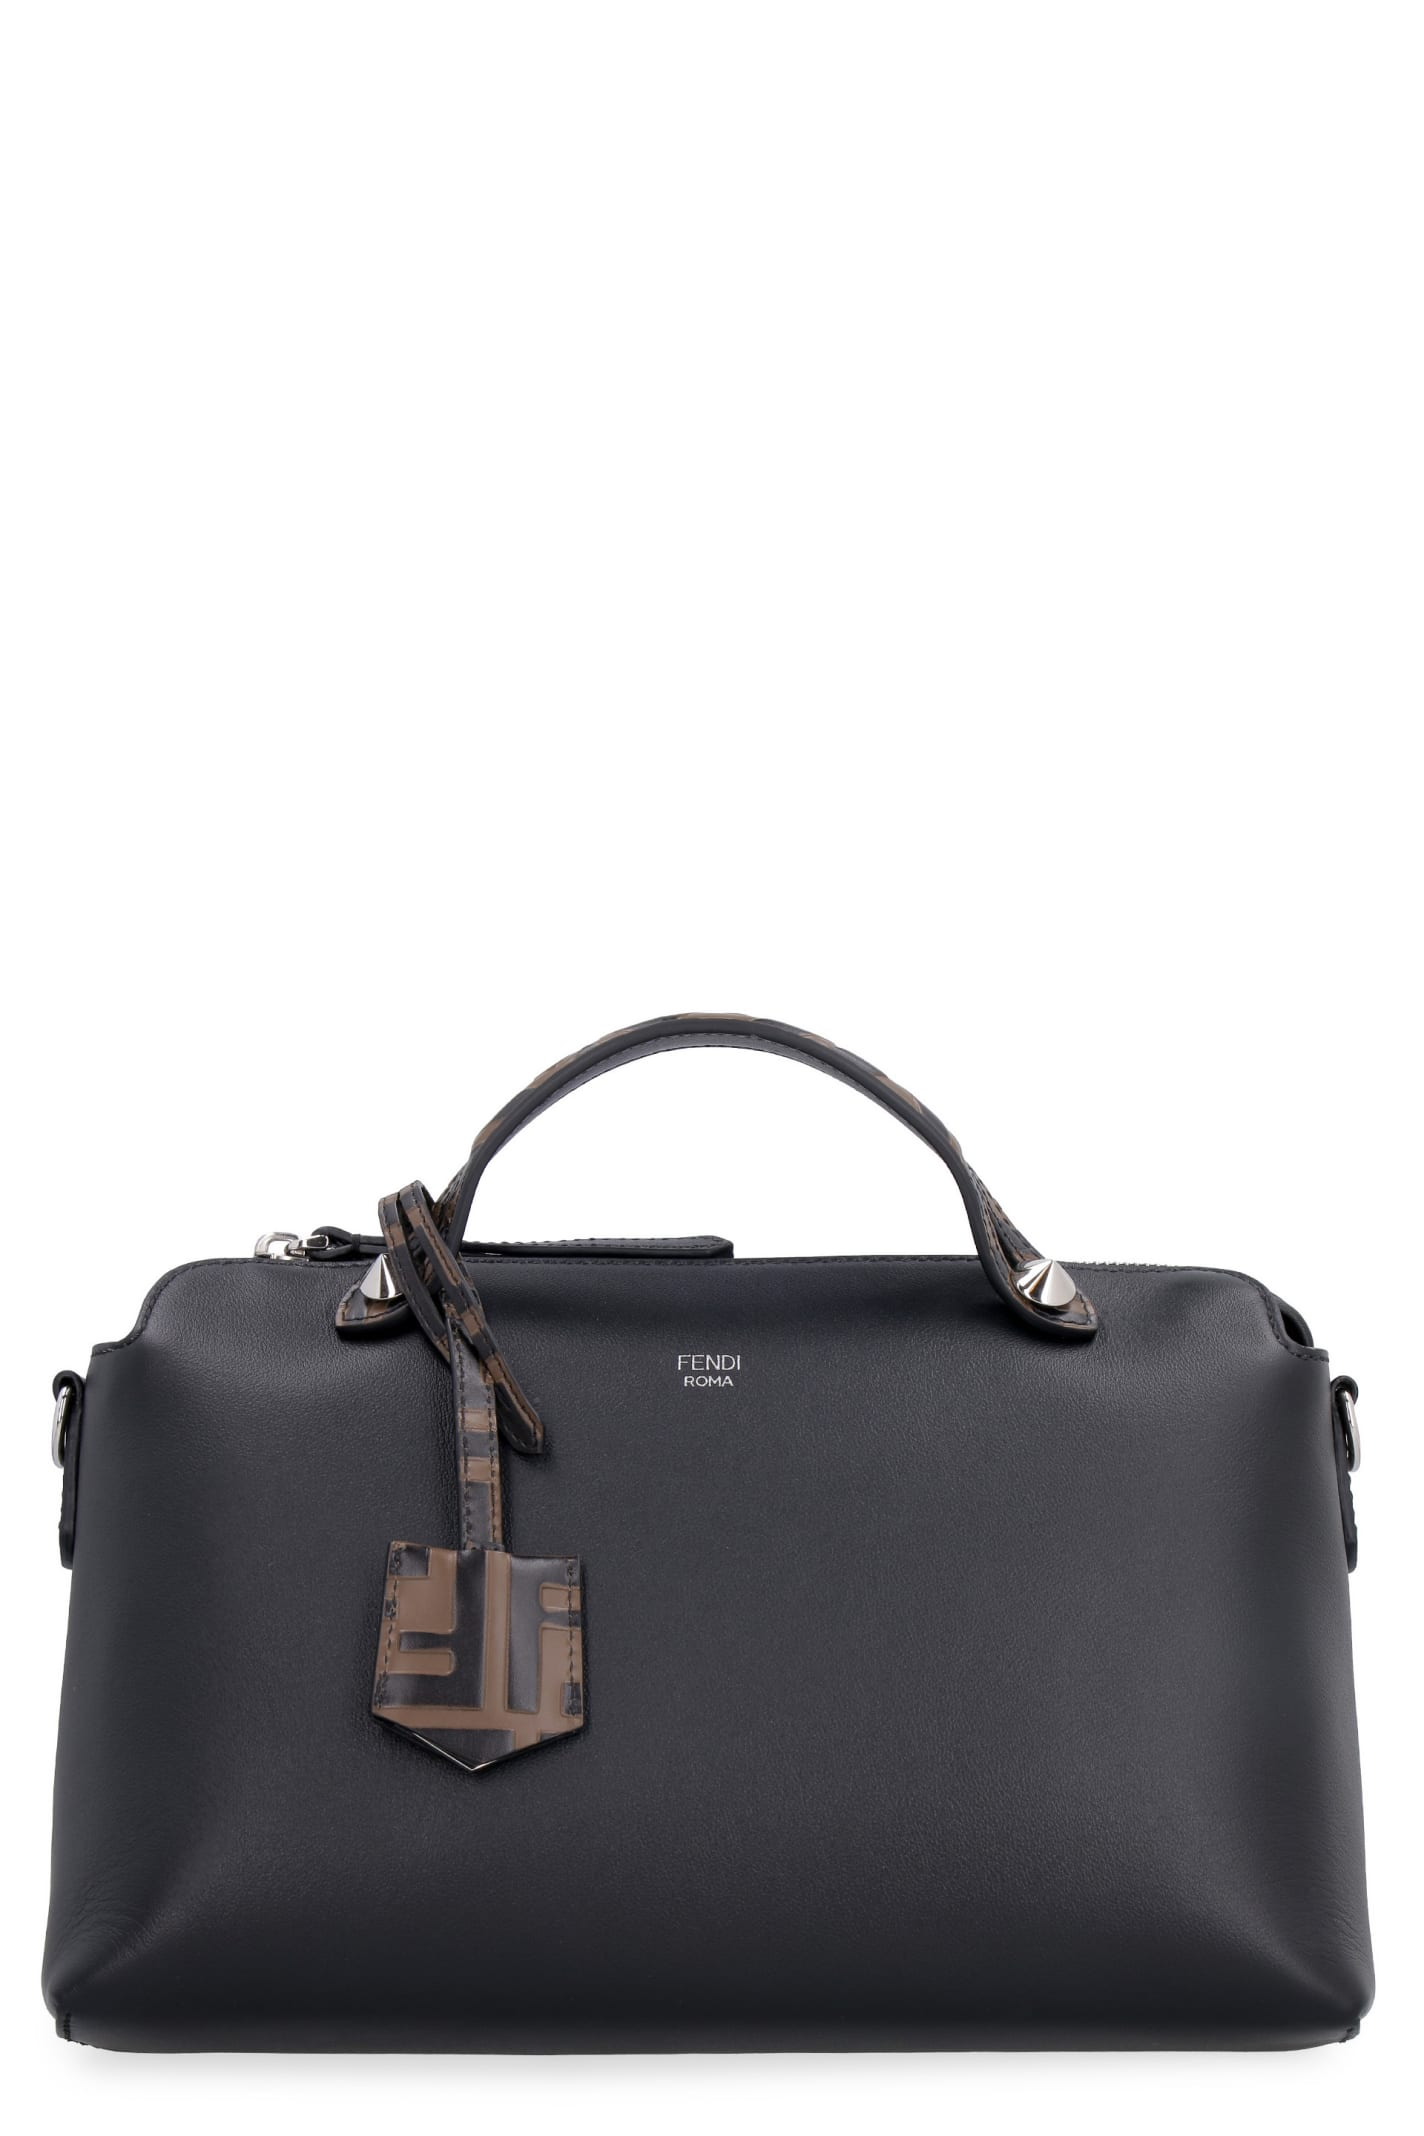 Fendi By The Way Leather Boston Bag